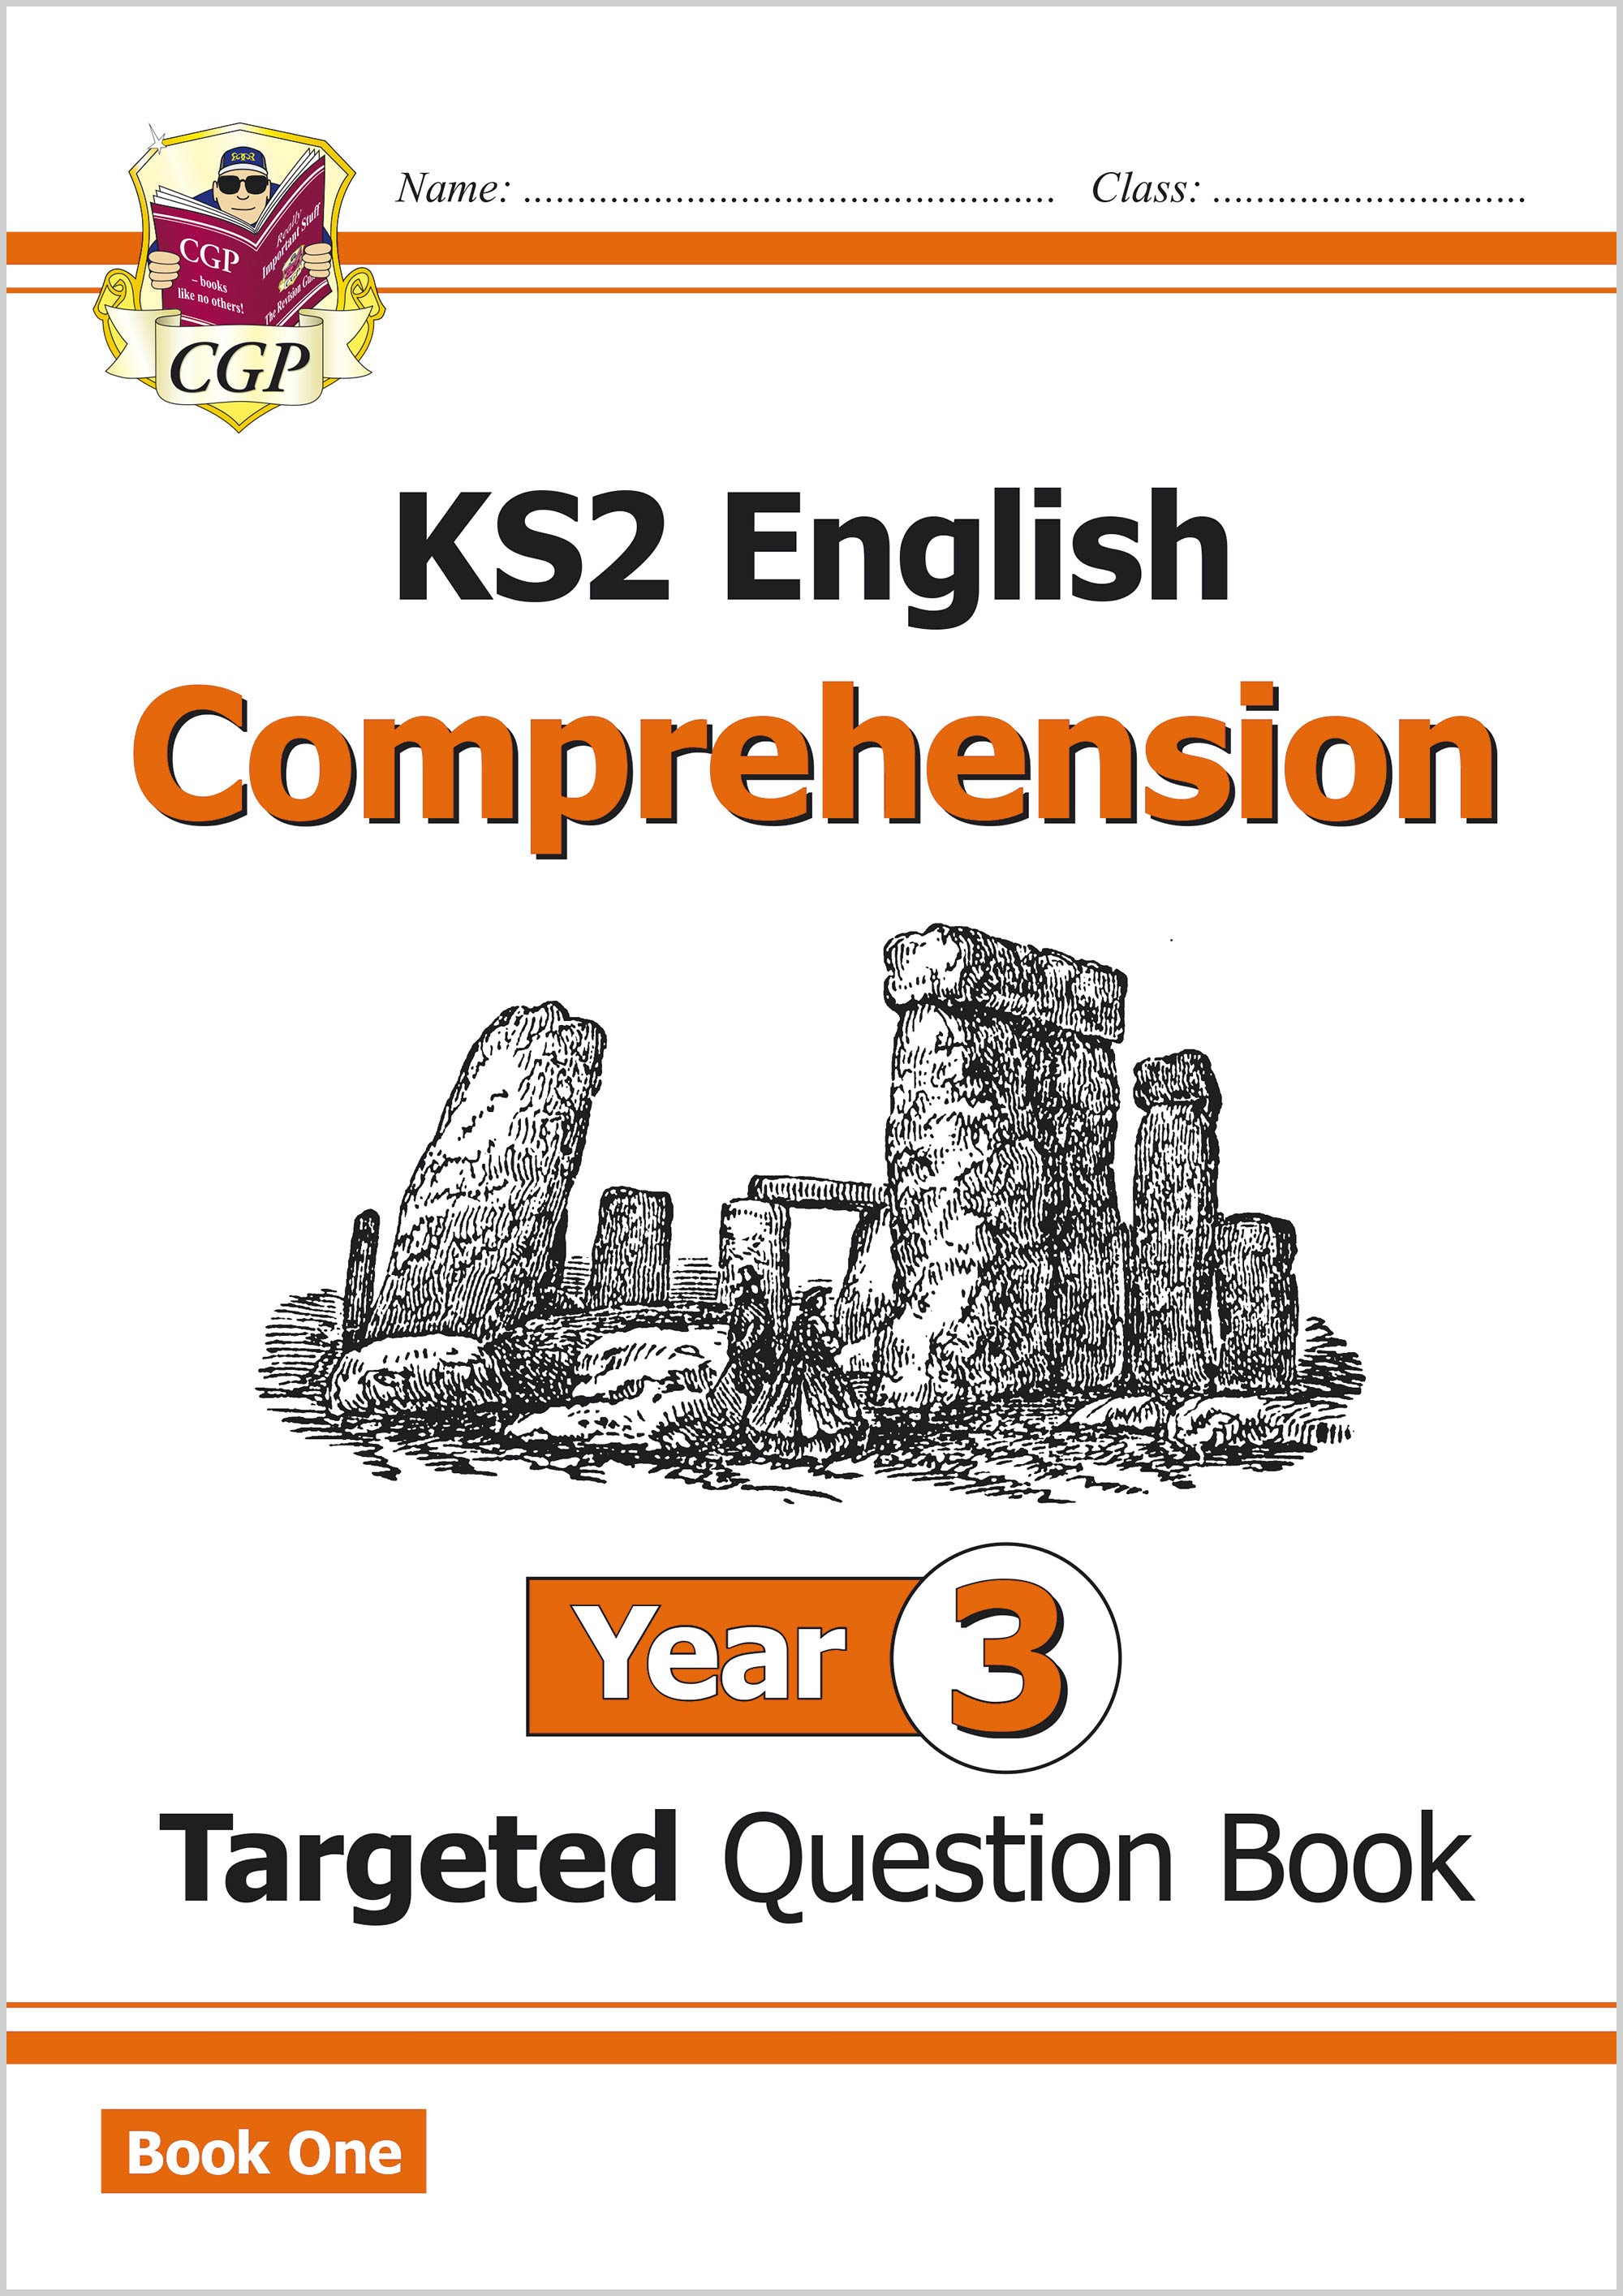 Ks2 English Targeted Question Book Year 3 Comprehension